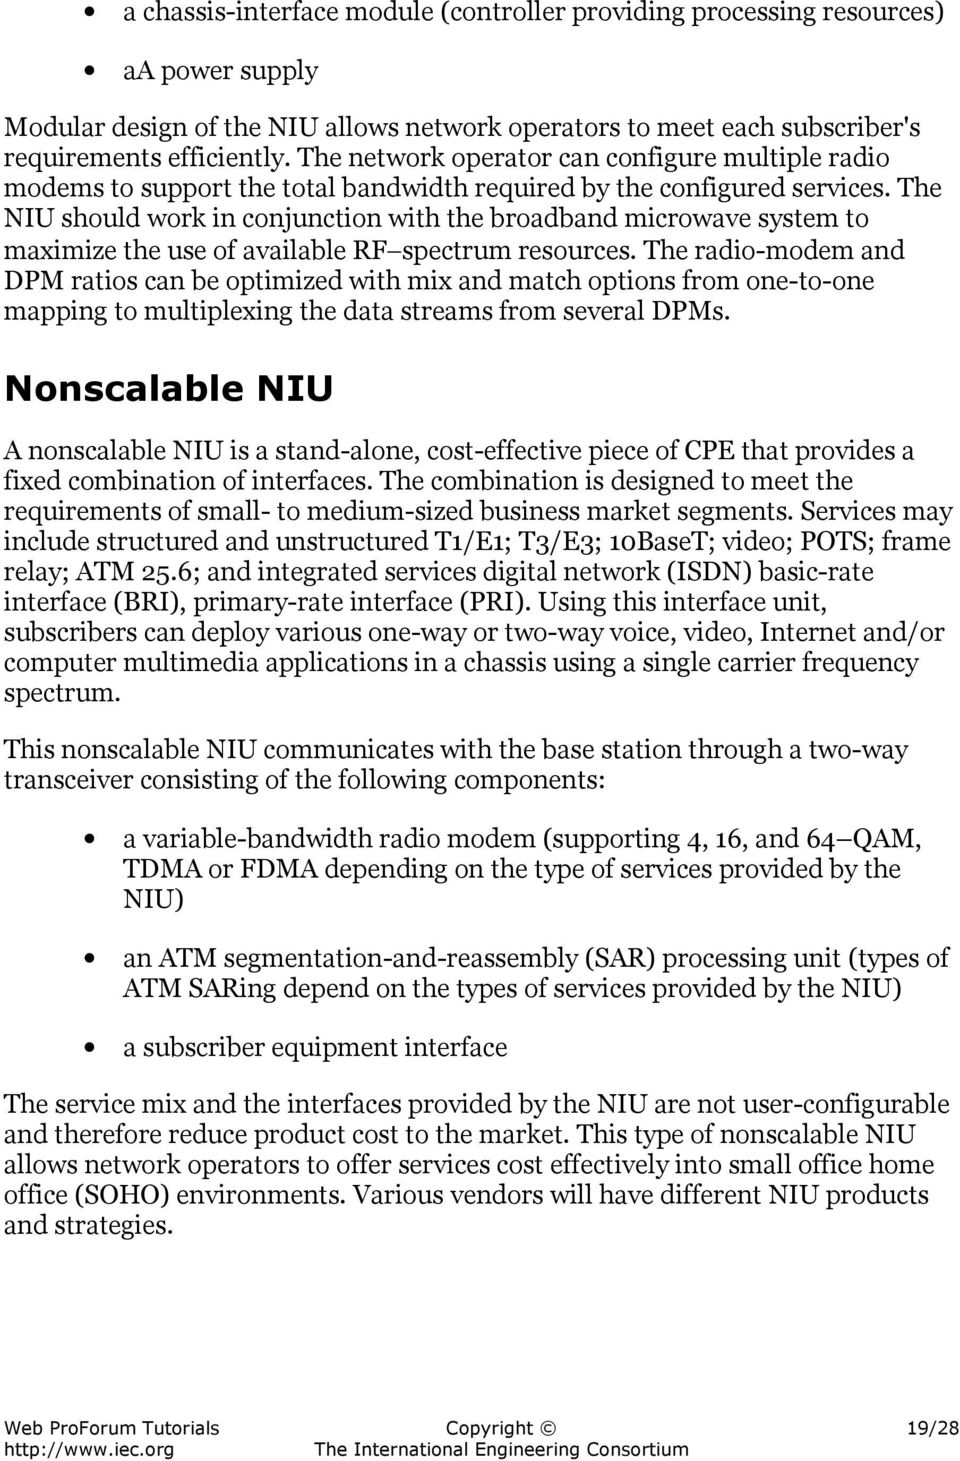 The NIU should work in conjunction with the broadband microwave system to maximize the use of available RF spectrum resources.